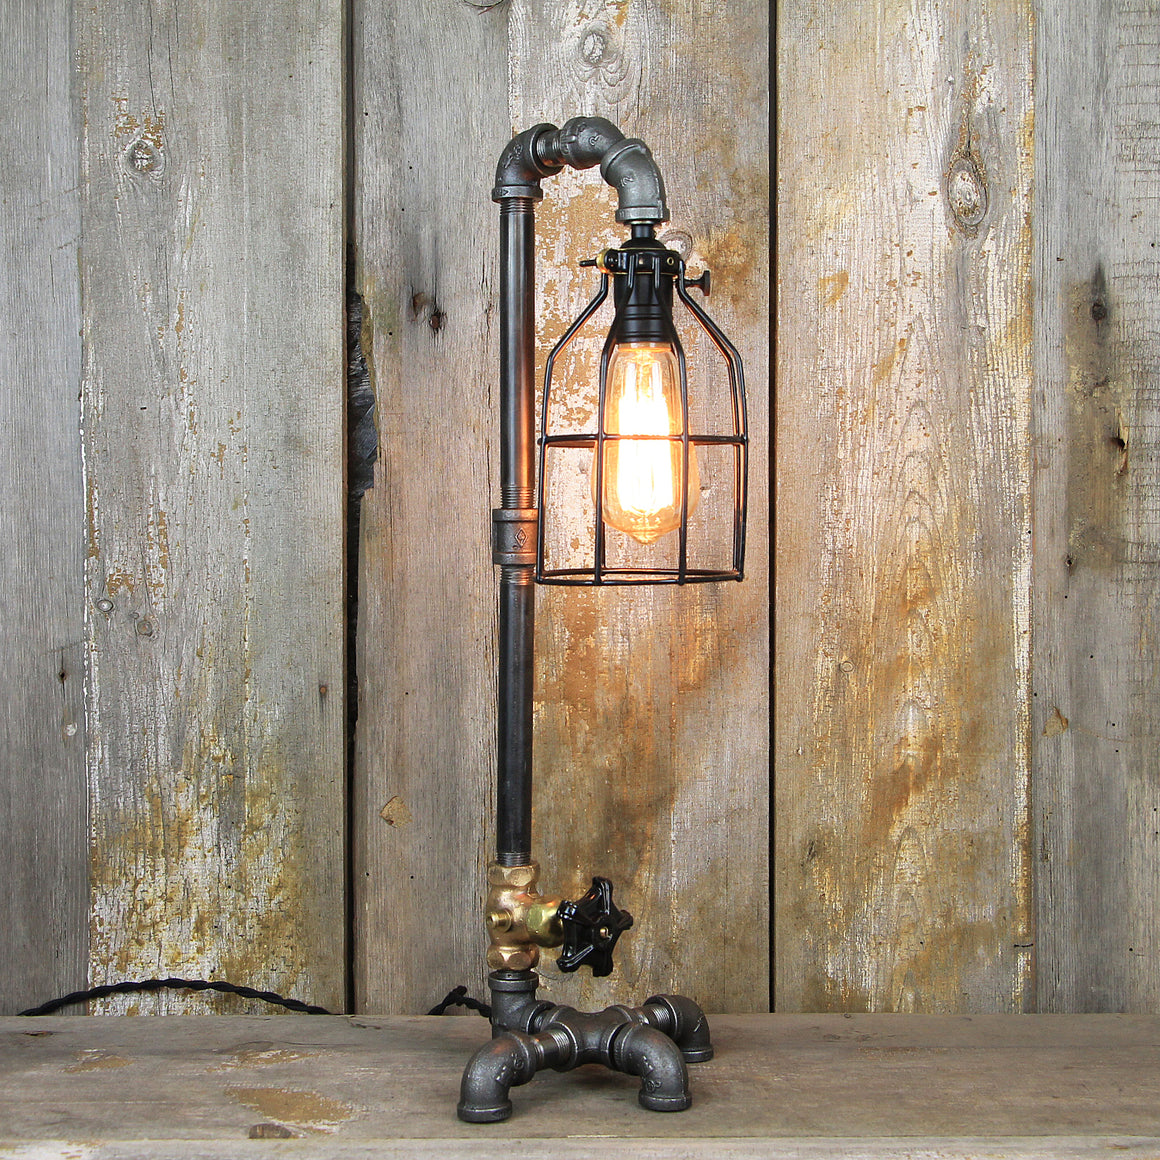 Industrial Table Lamp in a Lamp Post Style with an Edison Bulb - Steampunk Desk Lamp #98 - The Lighting Works